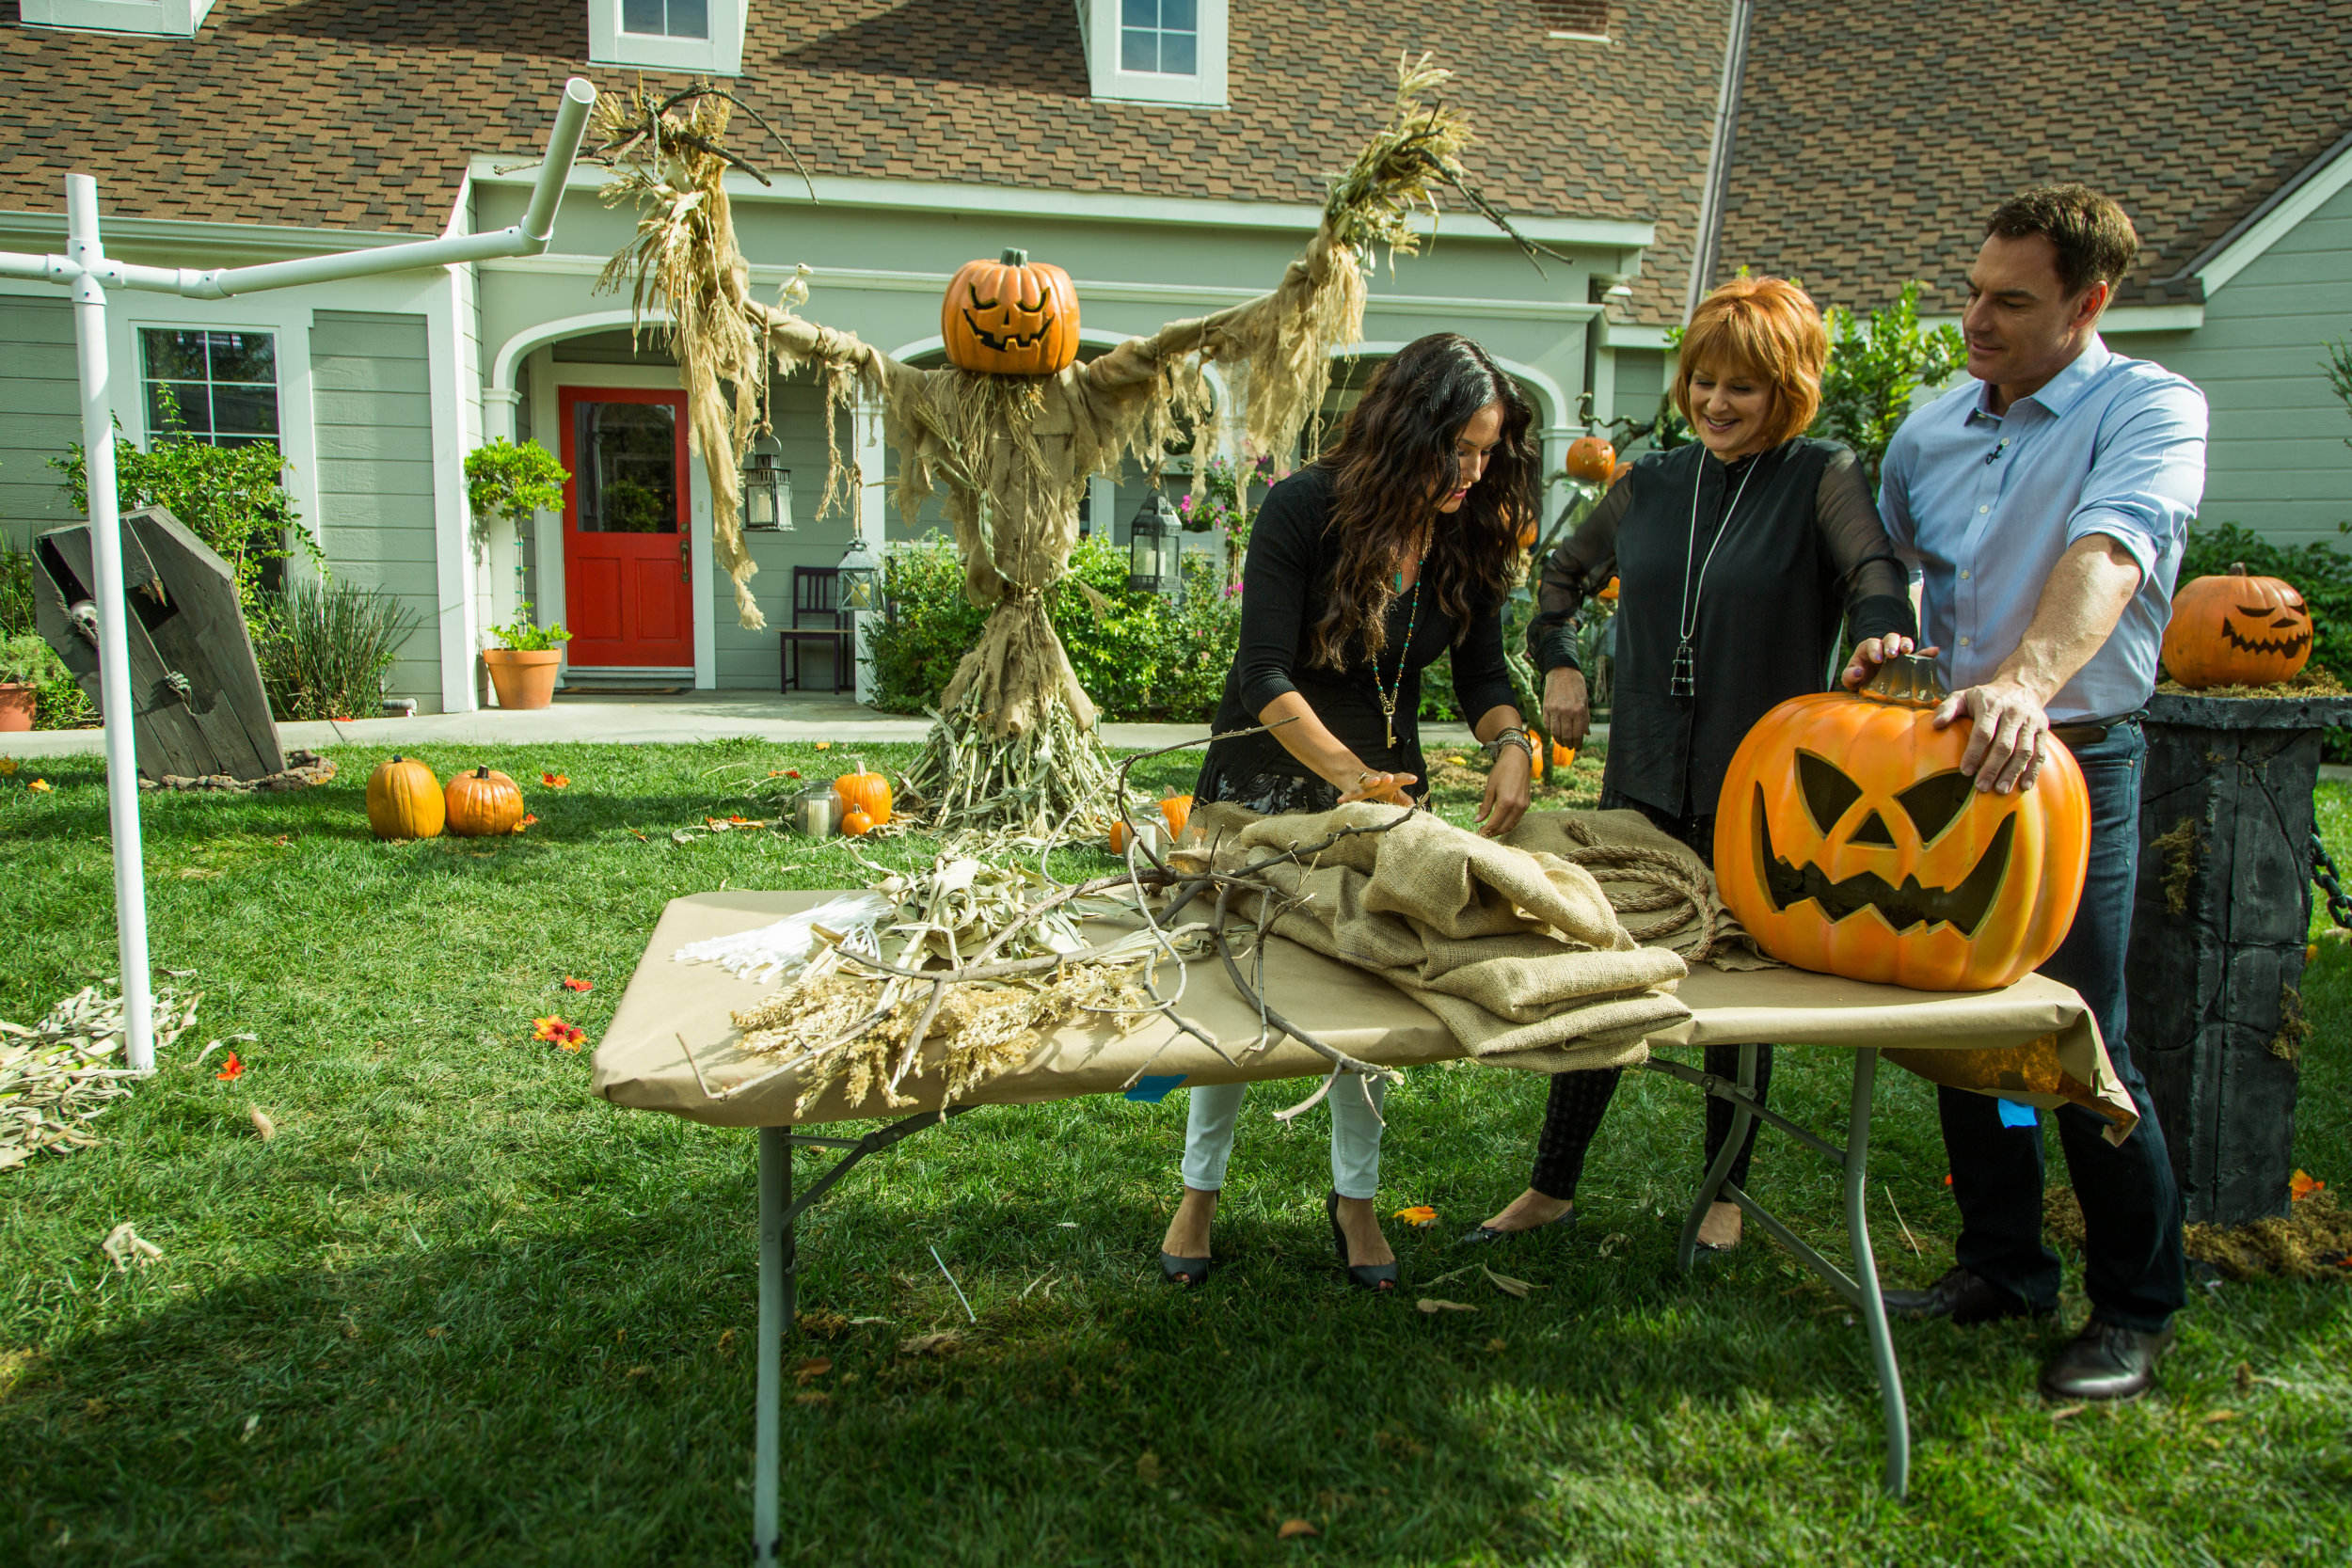 Giant Scarecrows Home Amp Family Video Hallmark Channel